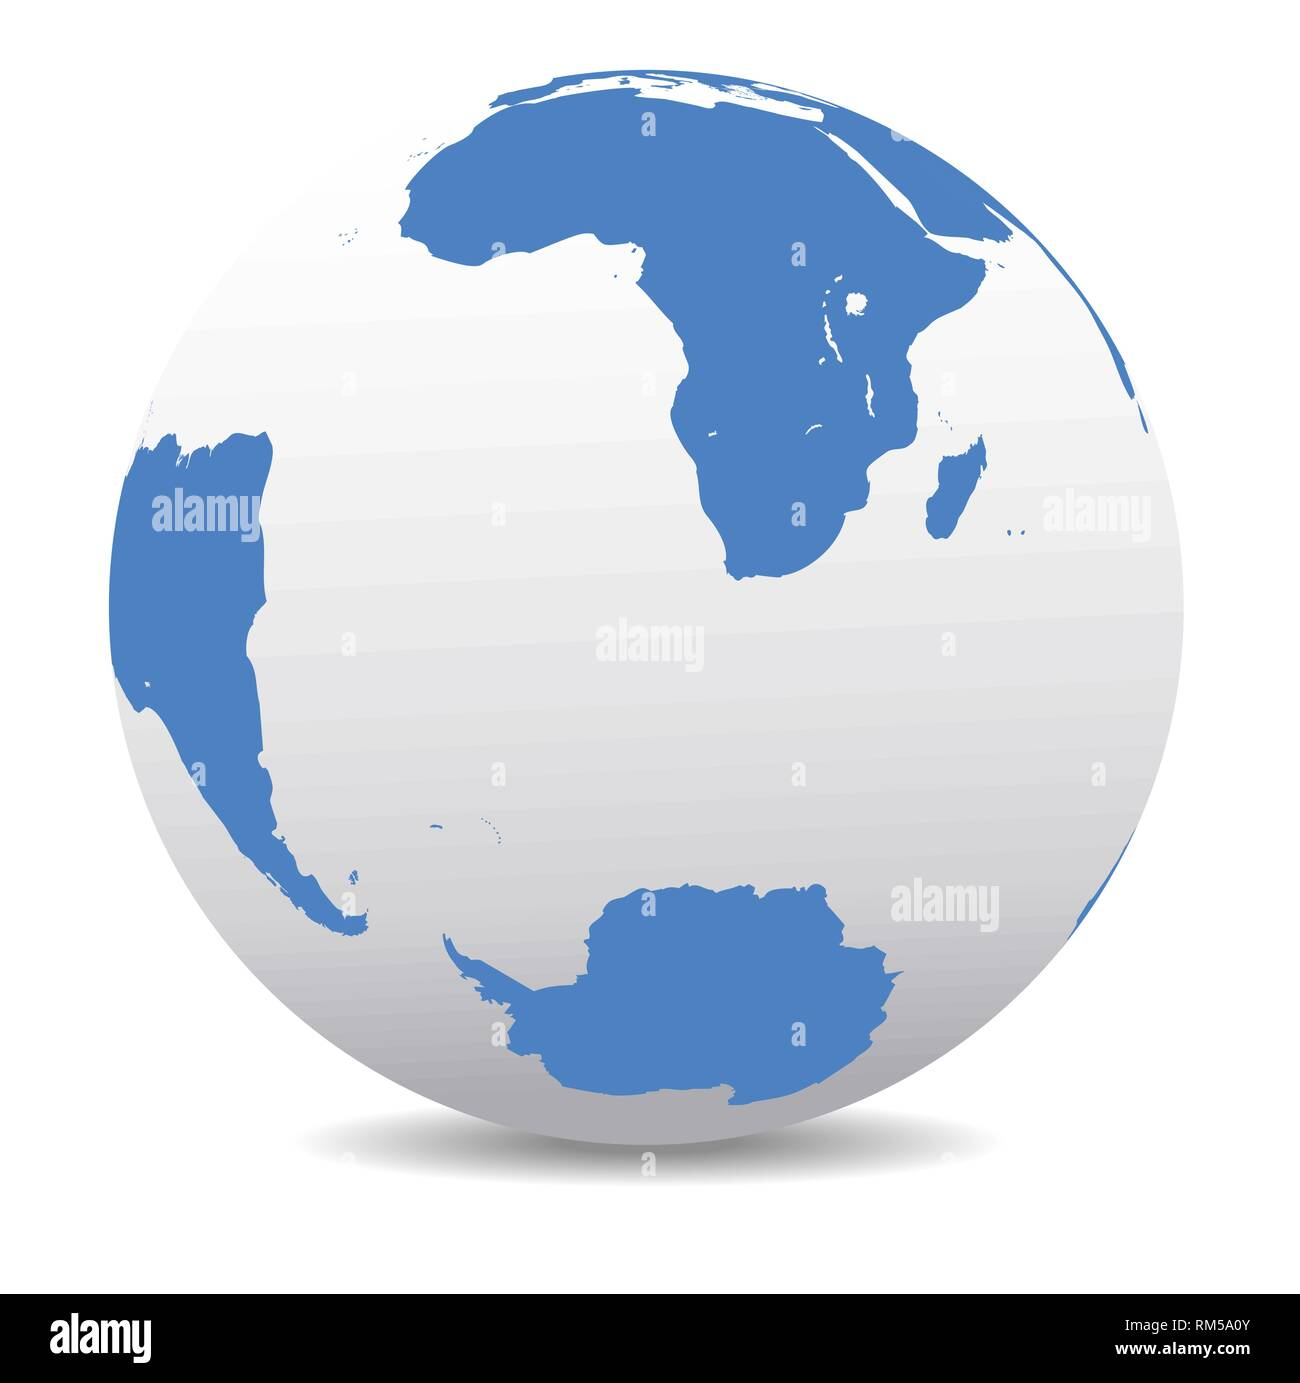 South Africa, Madagascar, South America and Antarctica, South Pole, Vector Map Icon of the World Globe Stock Vector